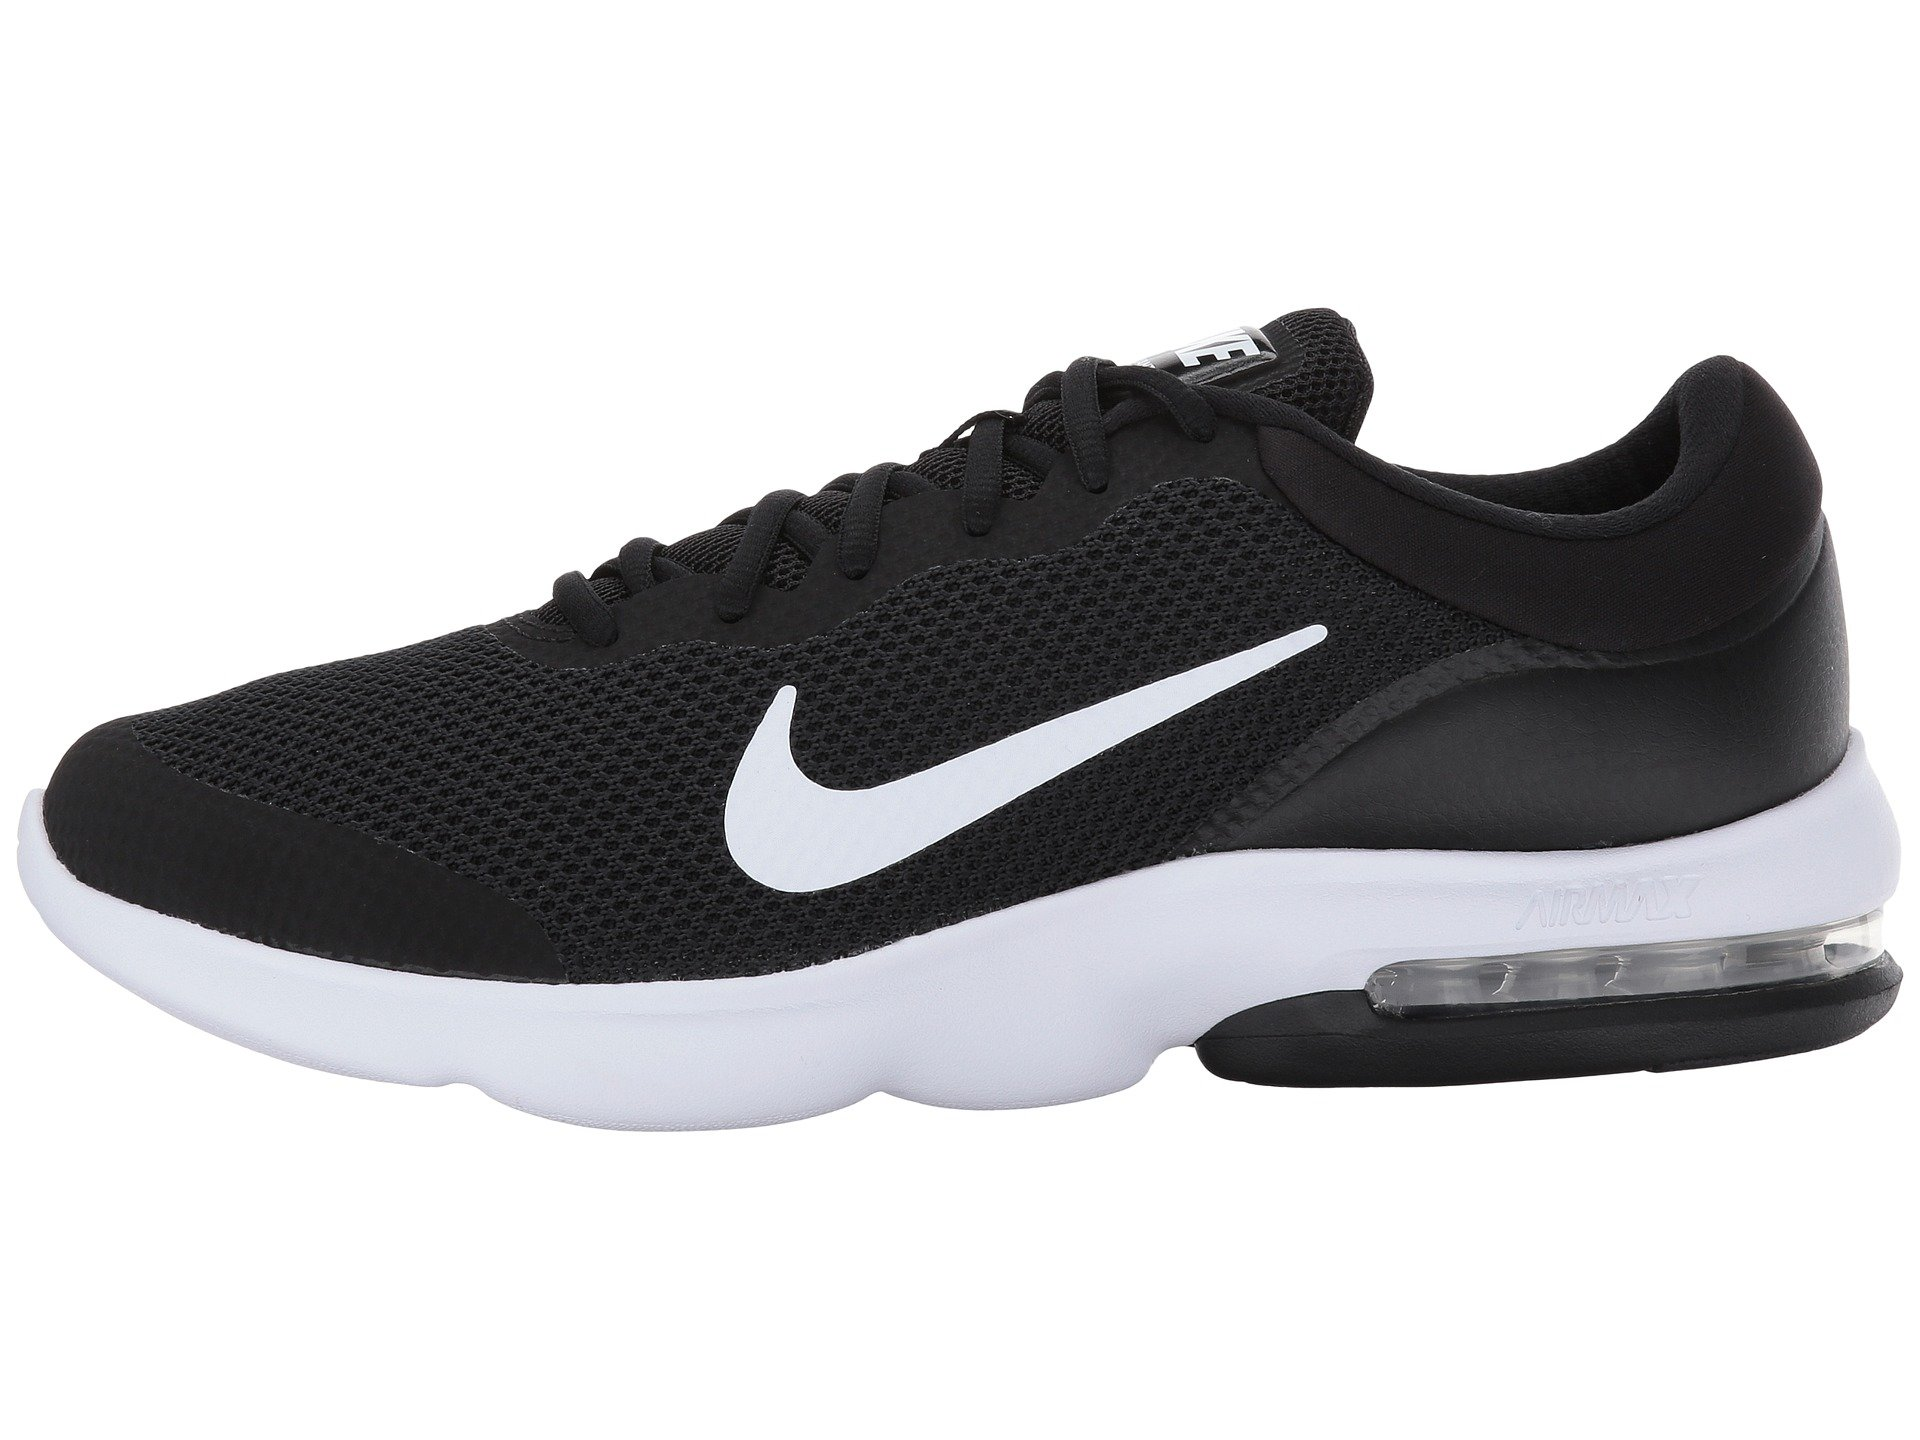 84a408f4c96752 Nike Sale Singapore Soccer Shoe